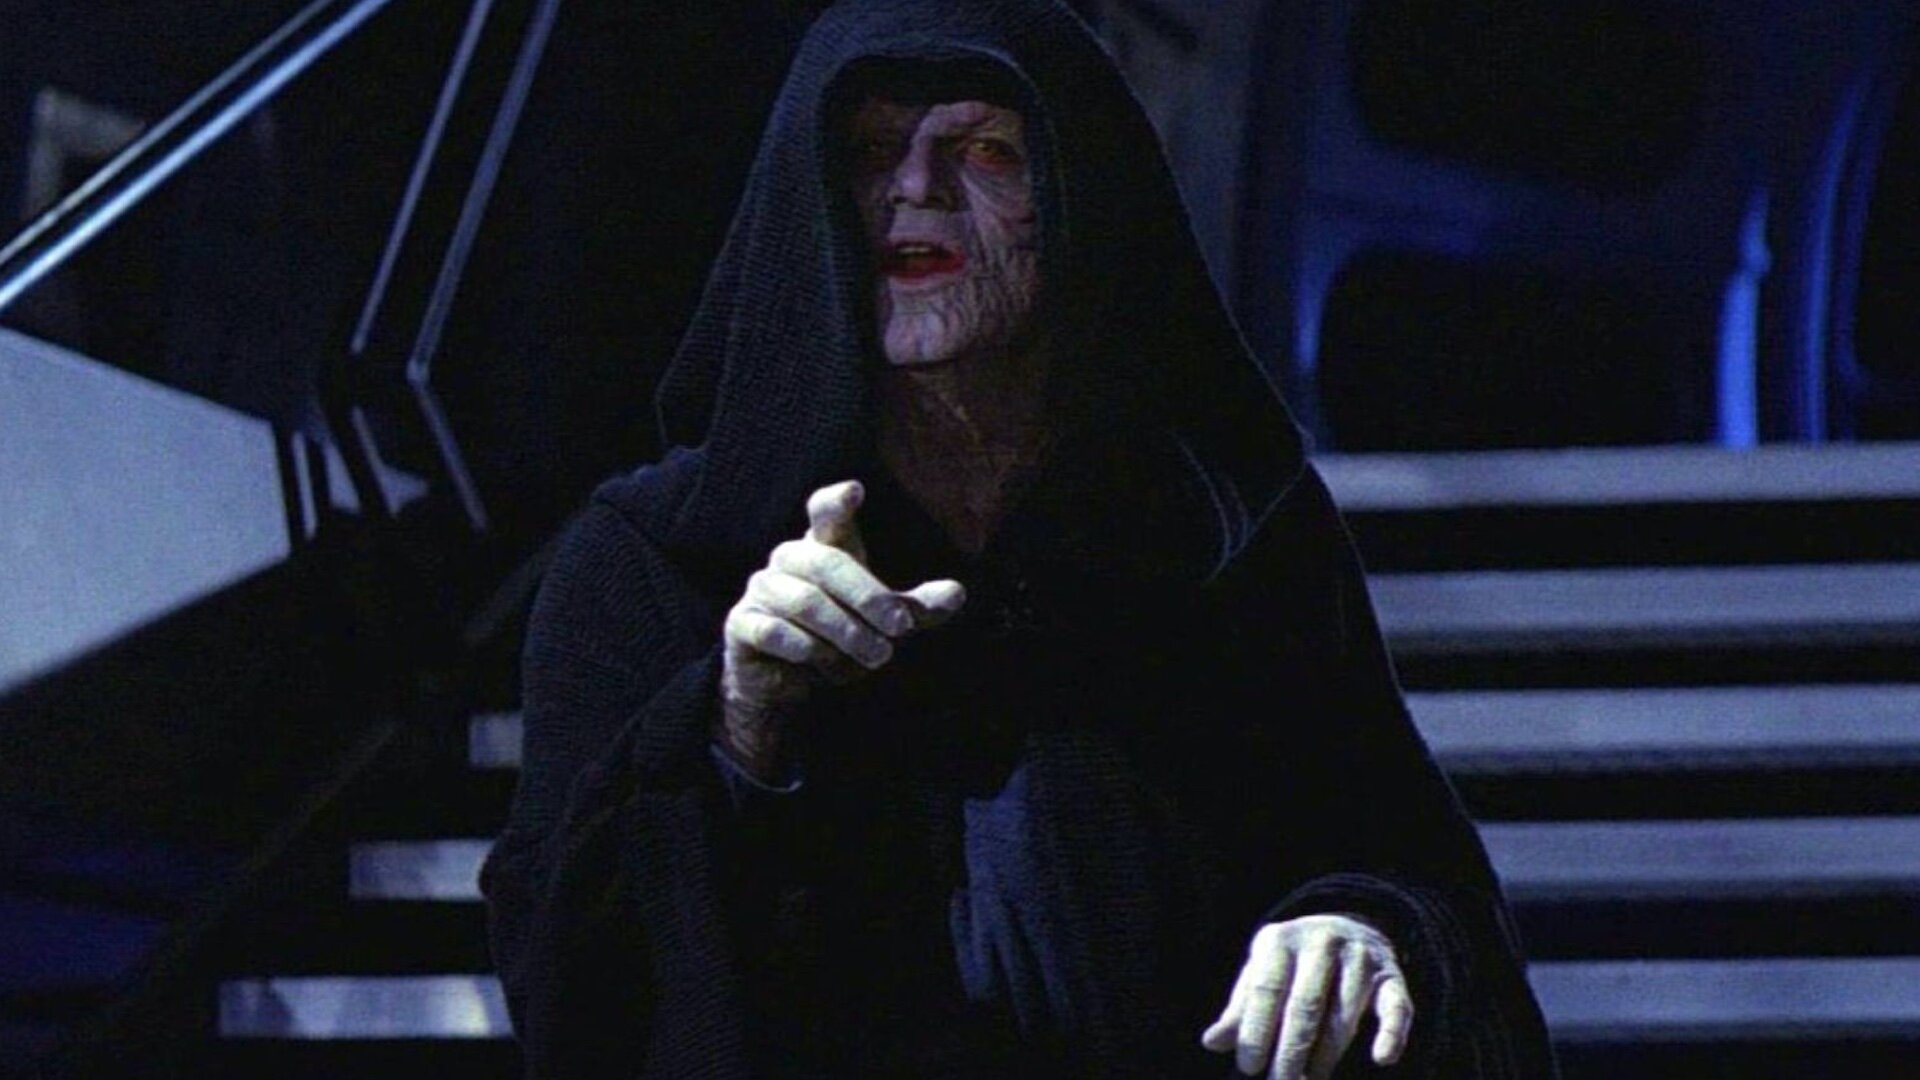 Listen To Emperor Palpatine S Mysterious Broadcast Mentioned In The Opening Crawl Of Star Wars The Rise Of Skywalker Geektyrant